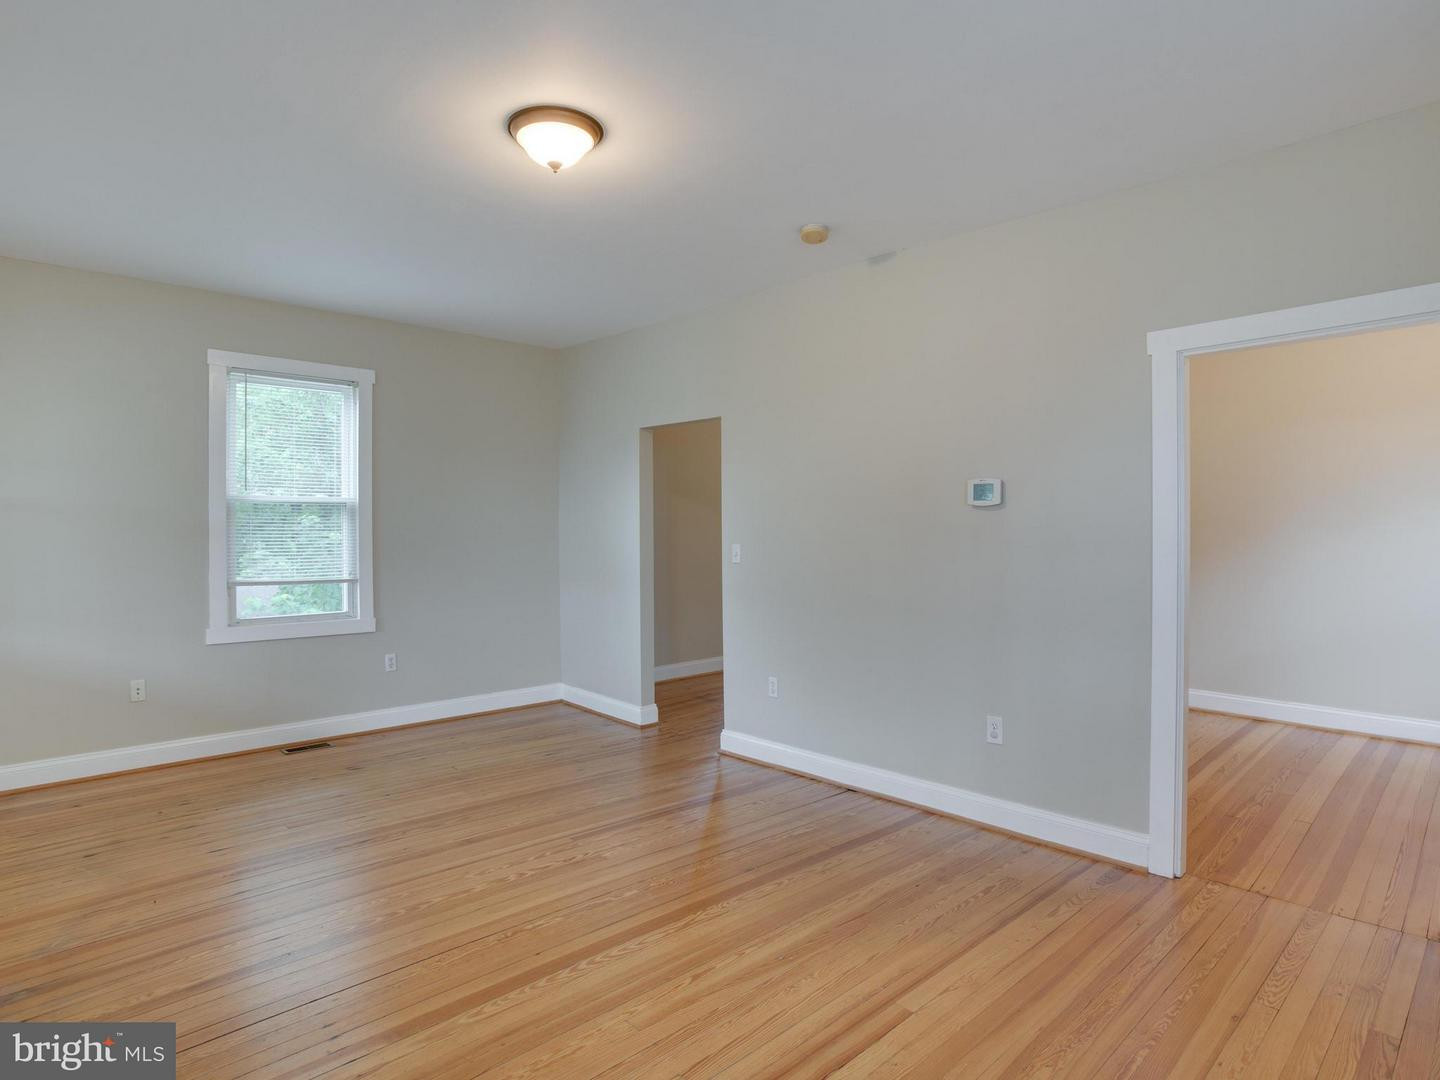 east penn hardwood flooring allentown pa of real estate for sale 7624 c st chesapeake beach md 20732 mls for view photo slide show 30 30 photo